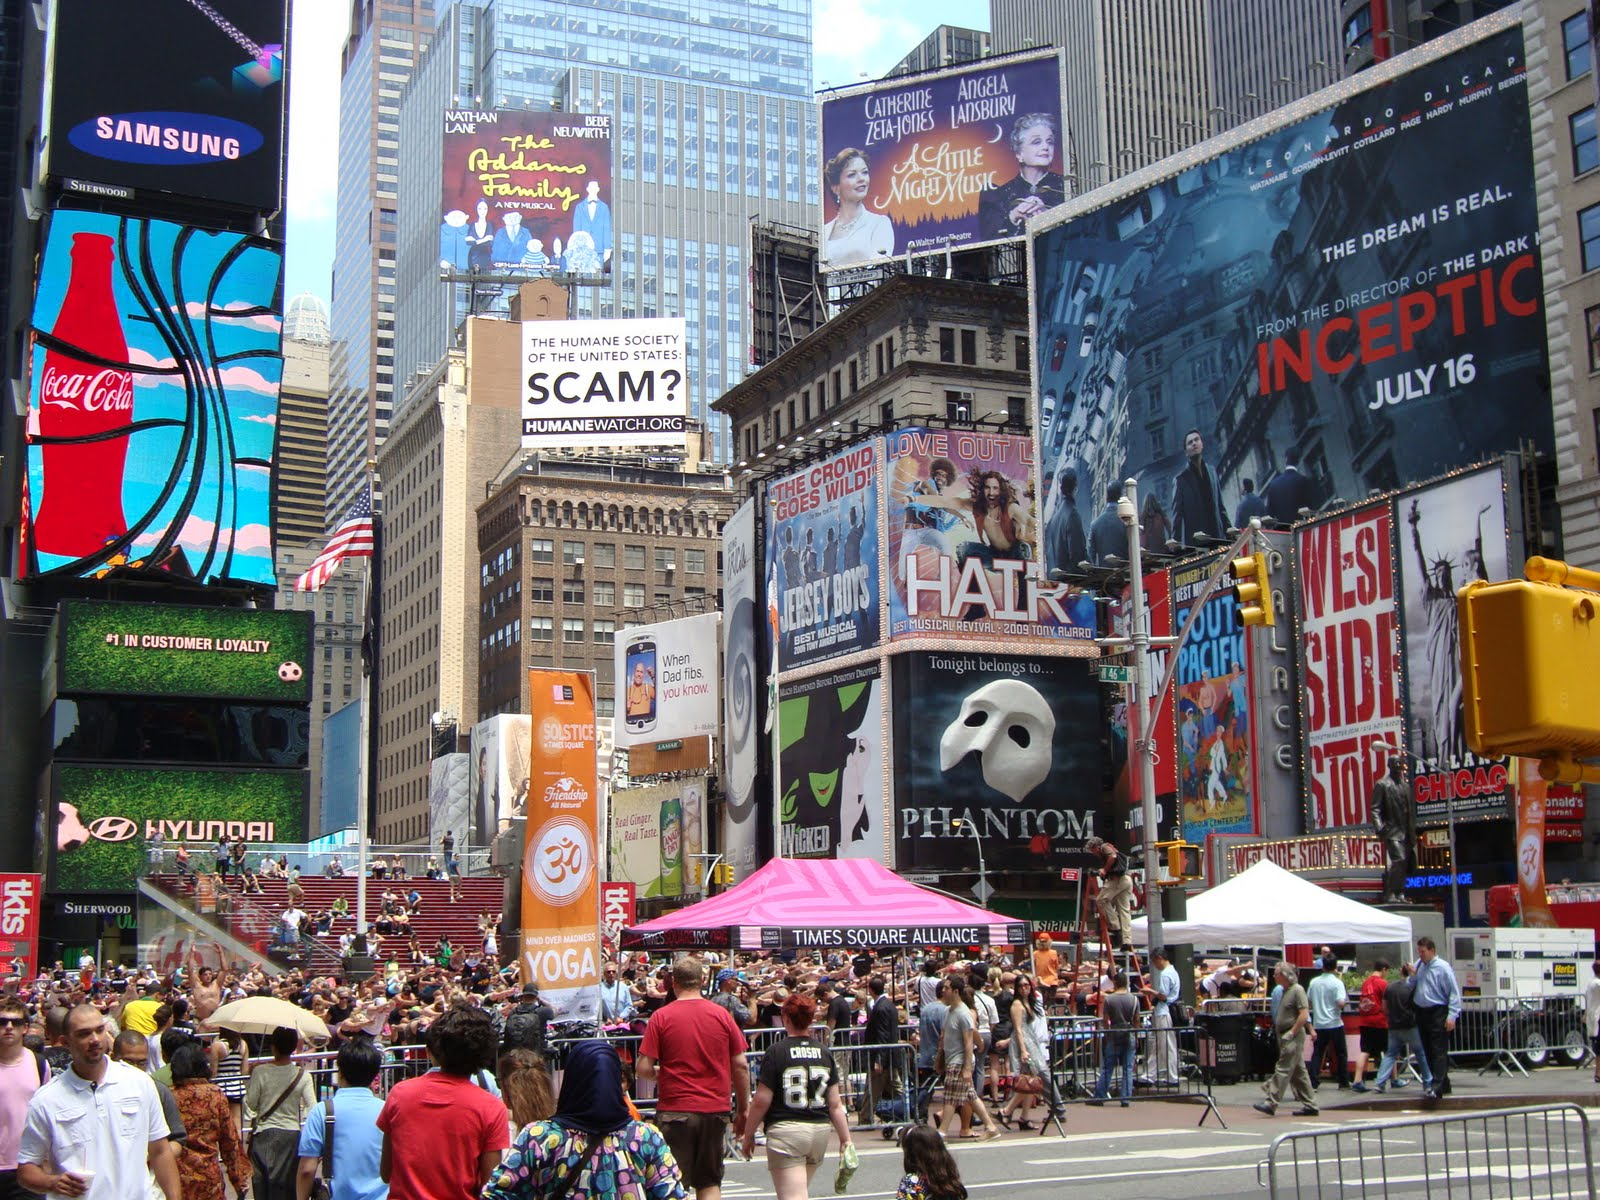 Shopping Search 63 Shopping Listings Found Broadway & 44th Street. LEARN MORE. Guitar Center. W 44th St () LEARN MORE. Hershey's Chocolate World. LEARN MORE. Swatch. Broadway () LEARN MORE. Aldo Shoes. W 42nd St () LEARN MORE. Sephora. W 42nd St () LEARN MORE. M.A.C.